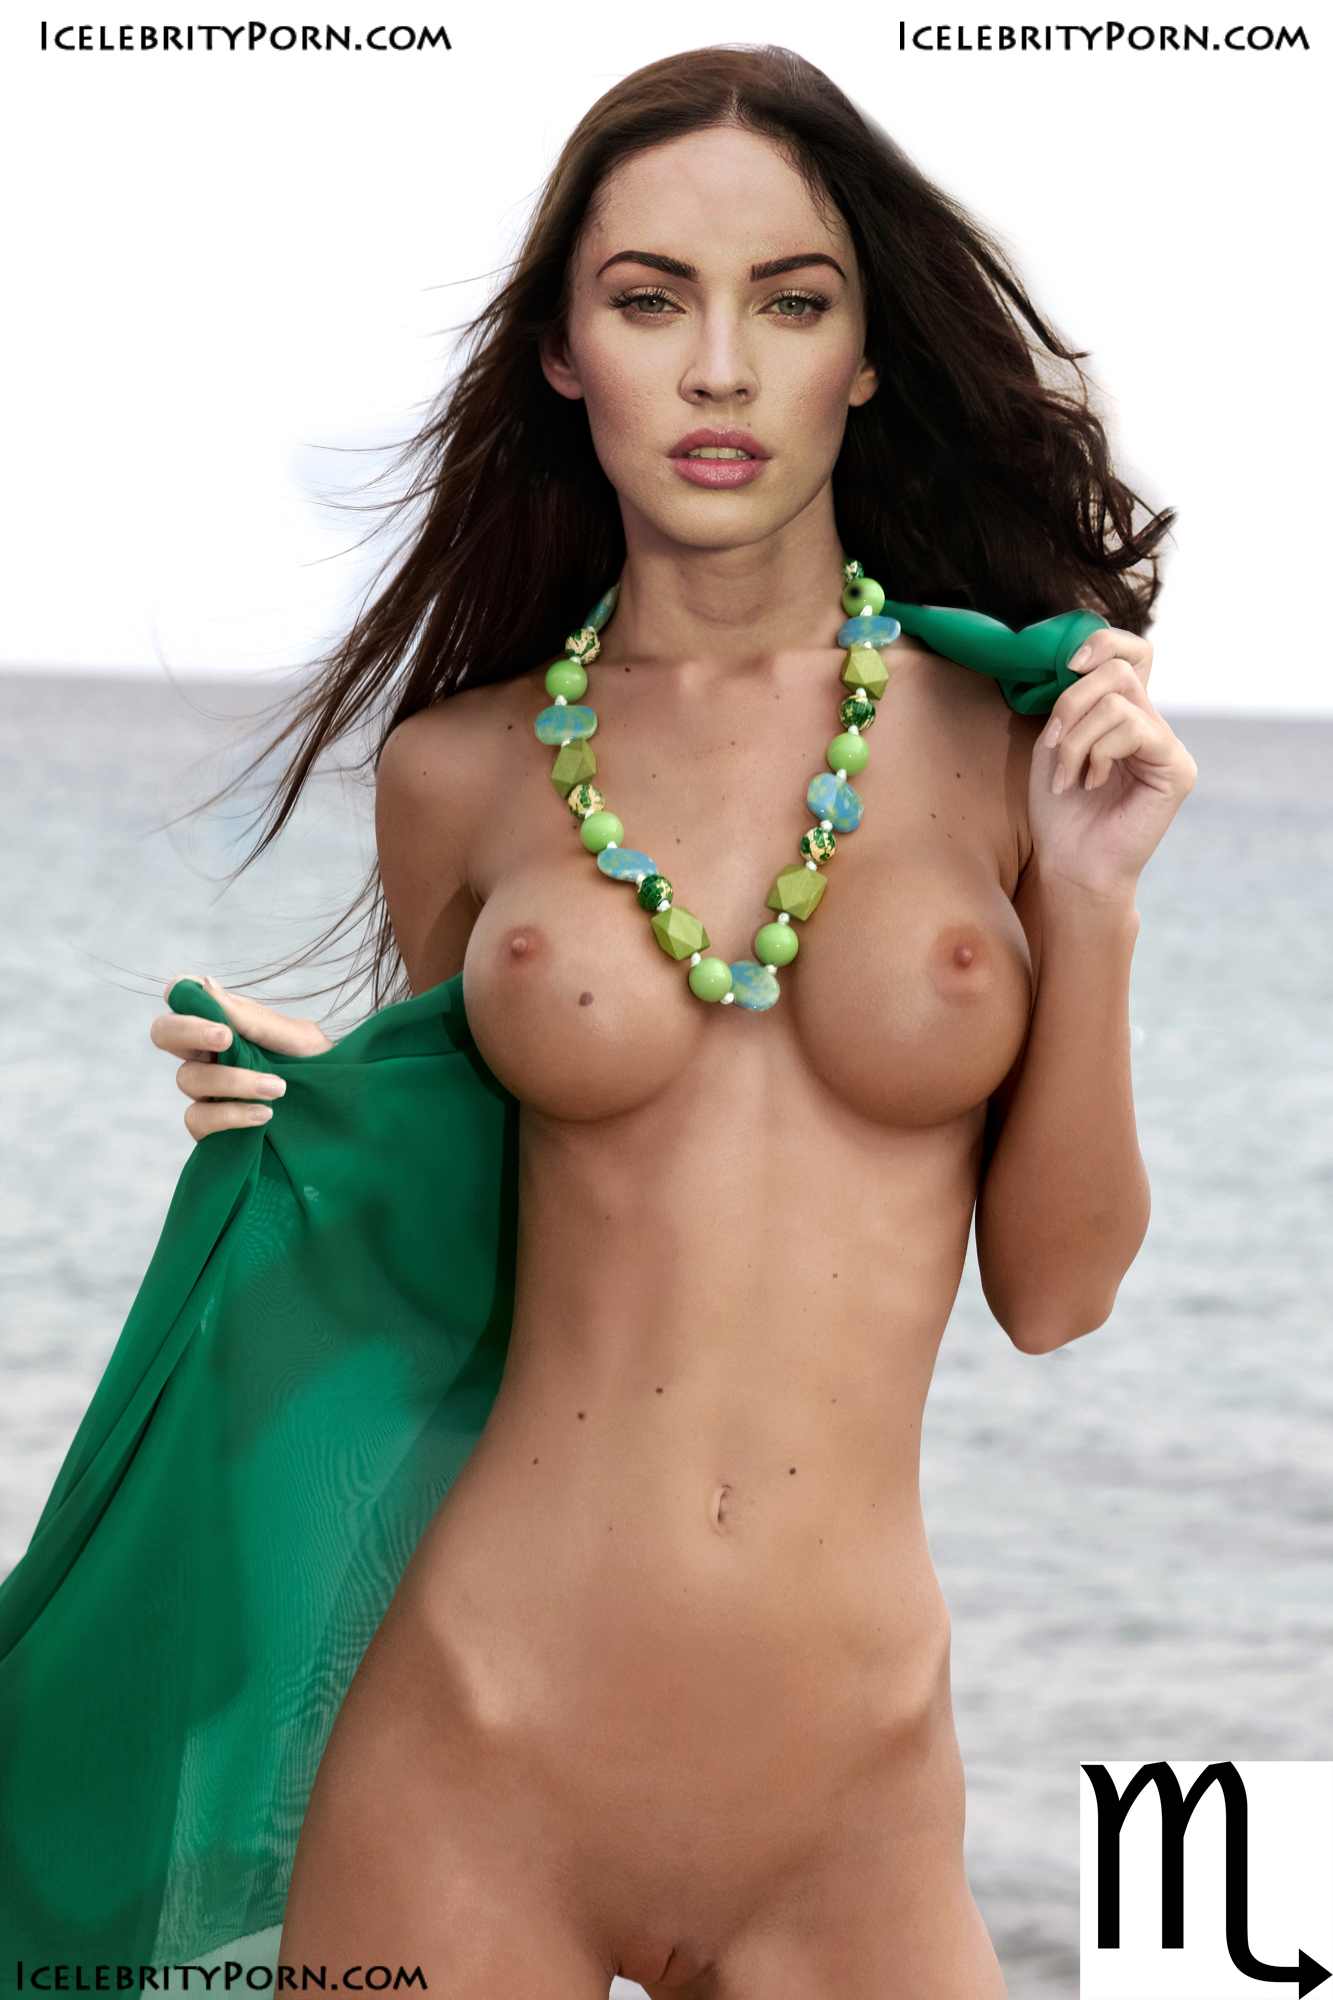 Megan Fox Desnuda xxx Porno - Megan Fox nude desnuda xxx hot pics play boy descuidos (6)